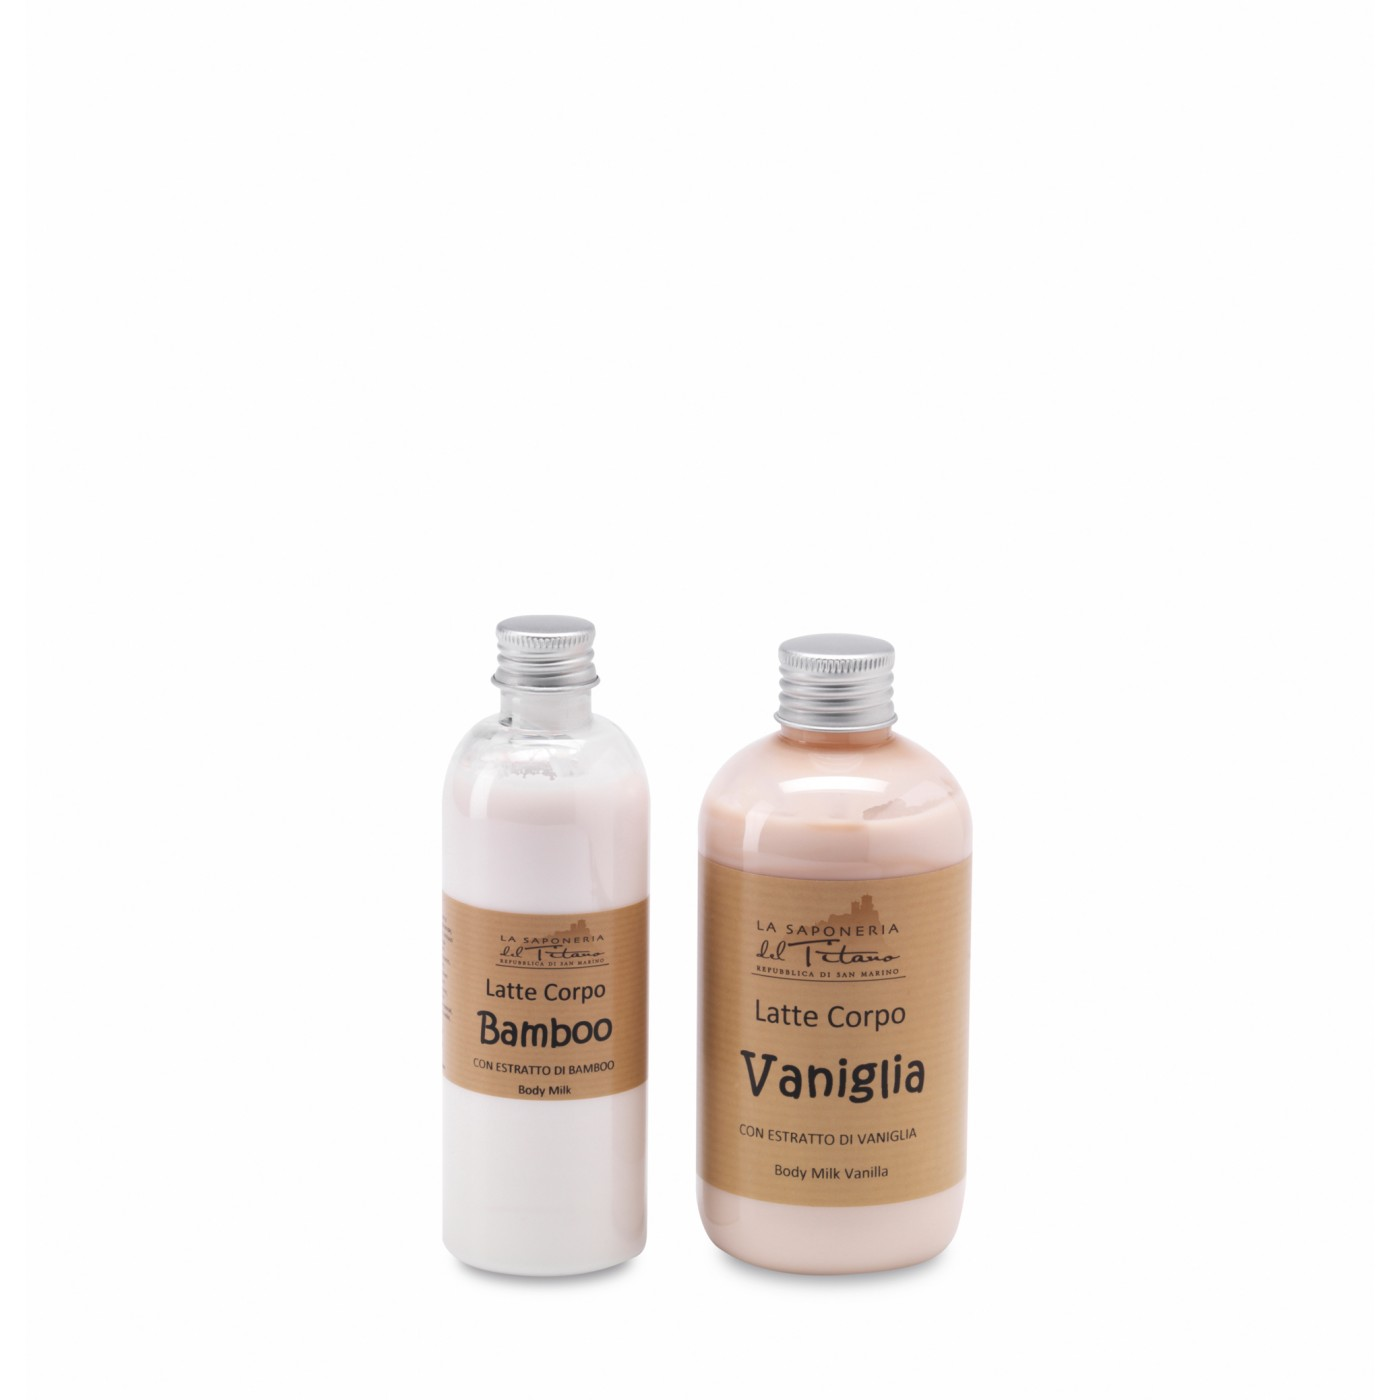 Latte Corpo fragranze varie